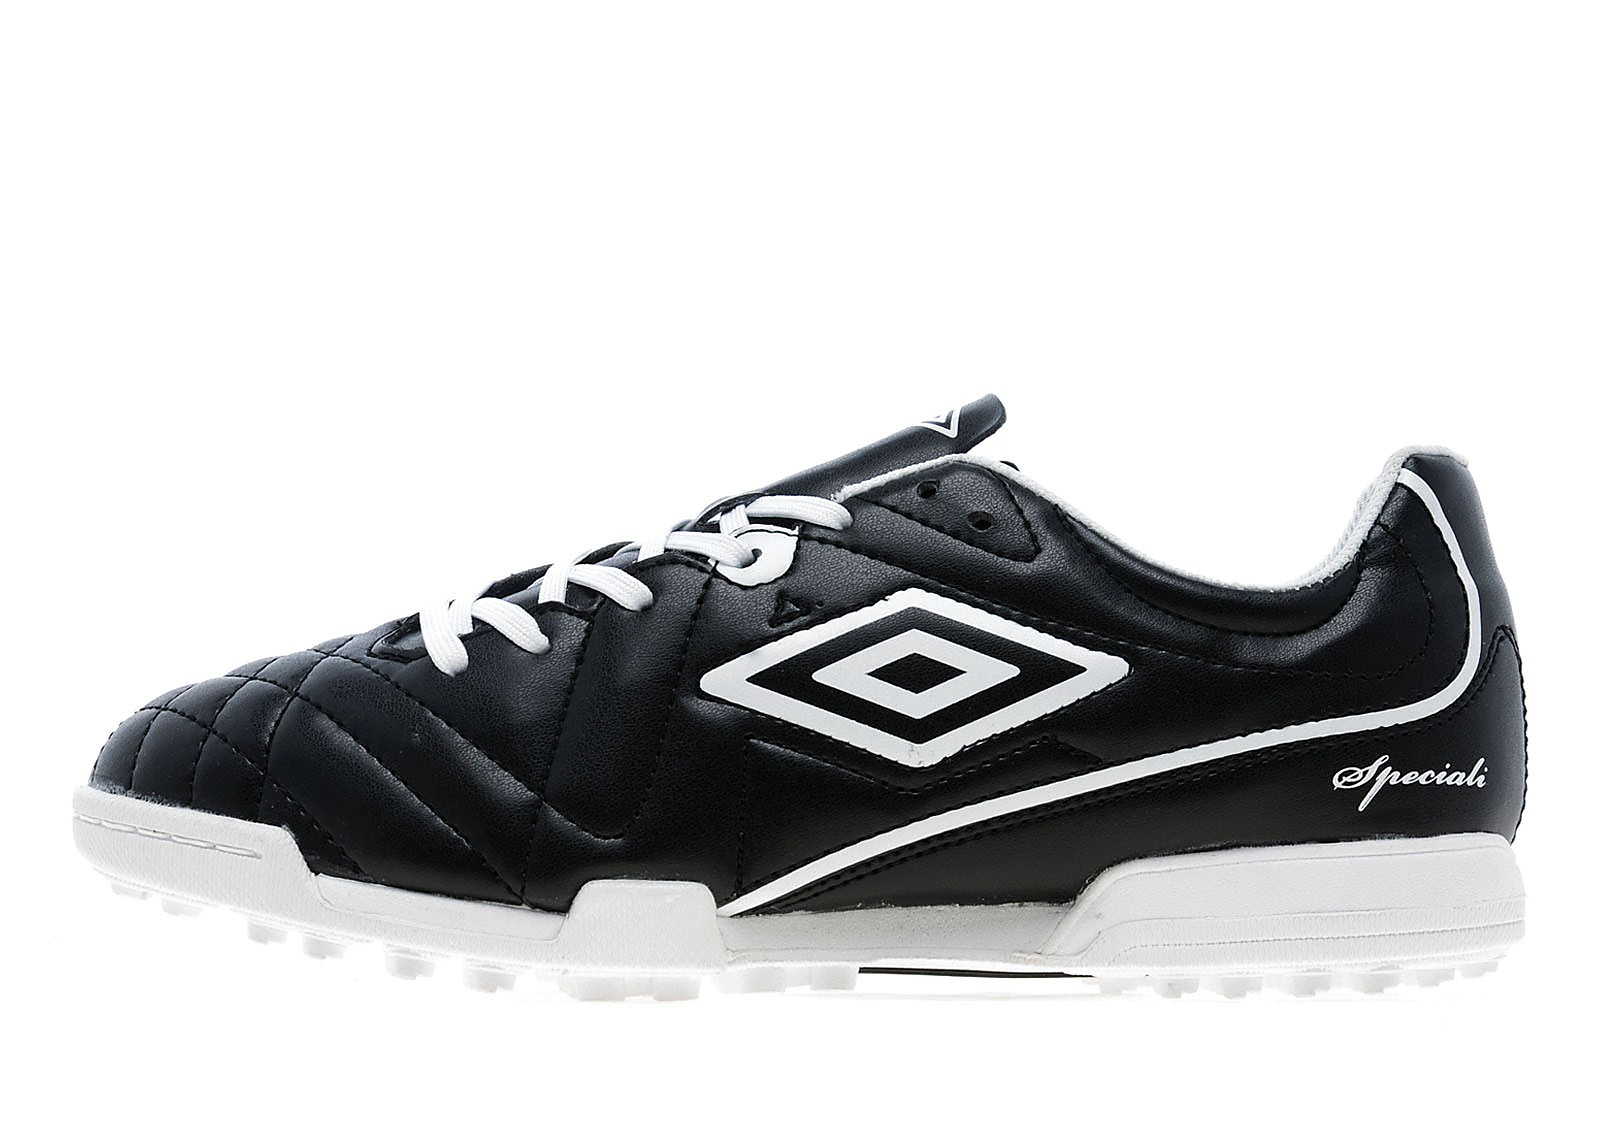 Mens Speciali Club 4 Astro Turf Black/White